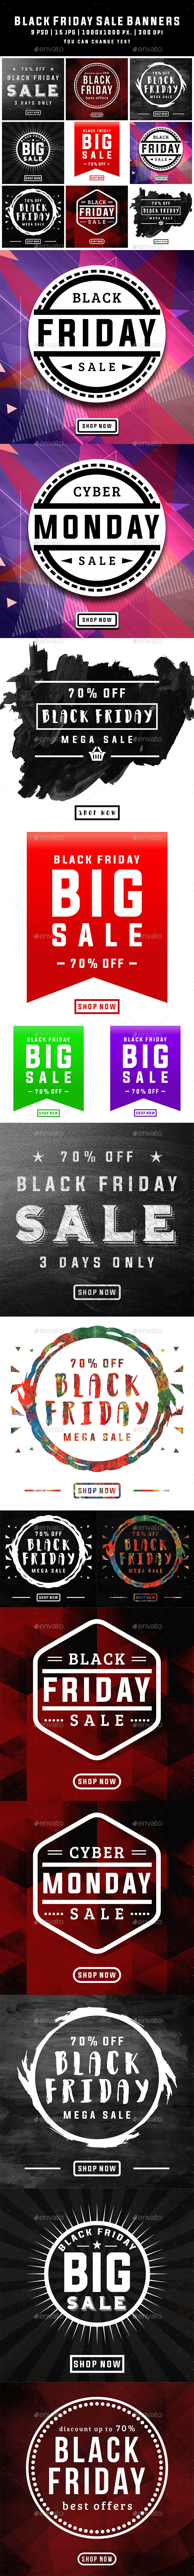 Black Friday Banners - Banners & Ads Web Elements